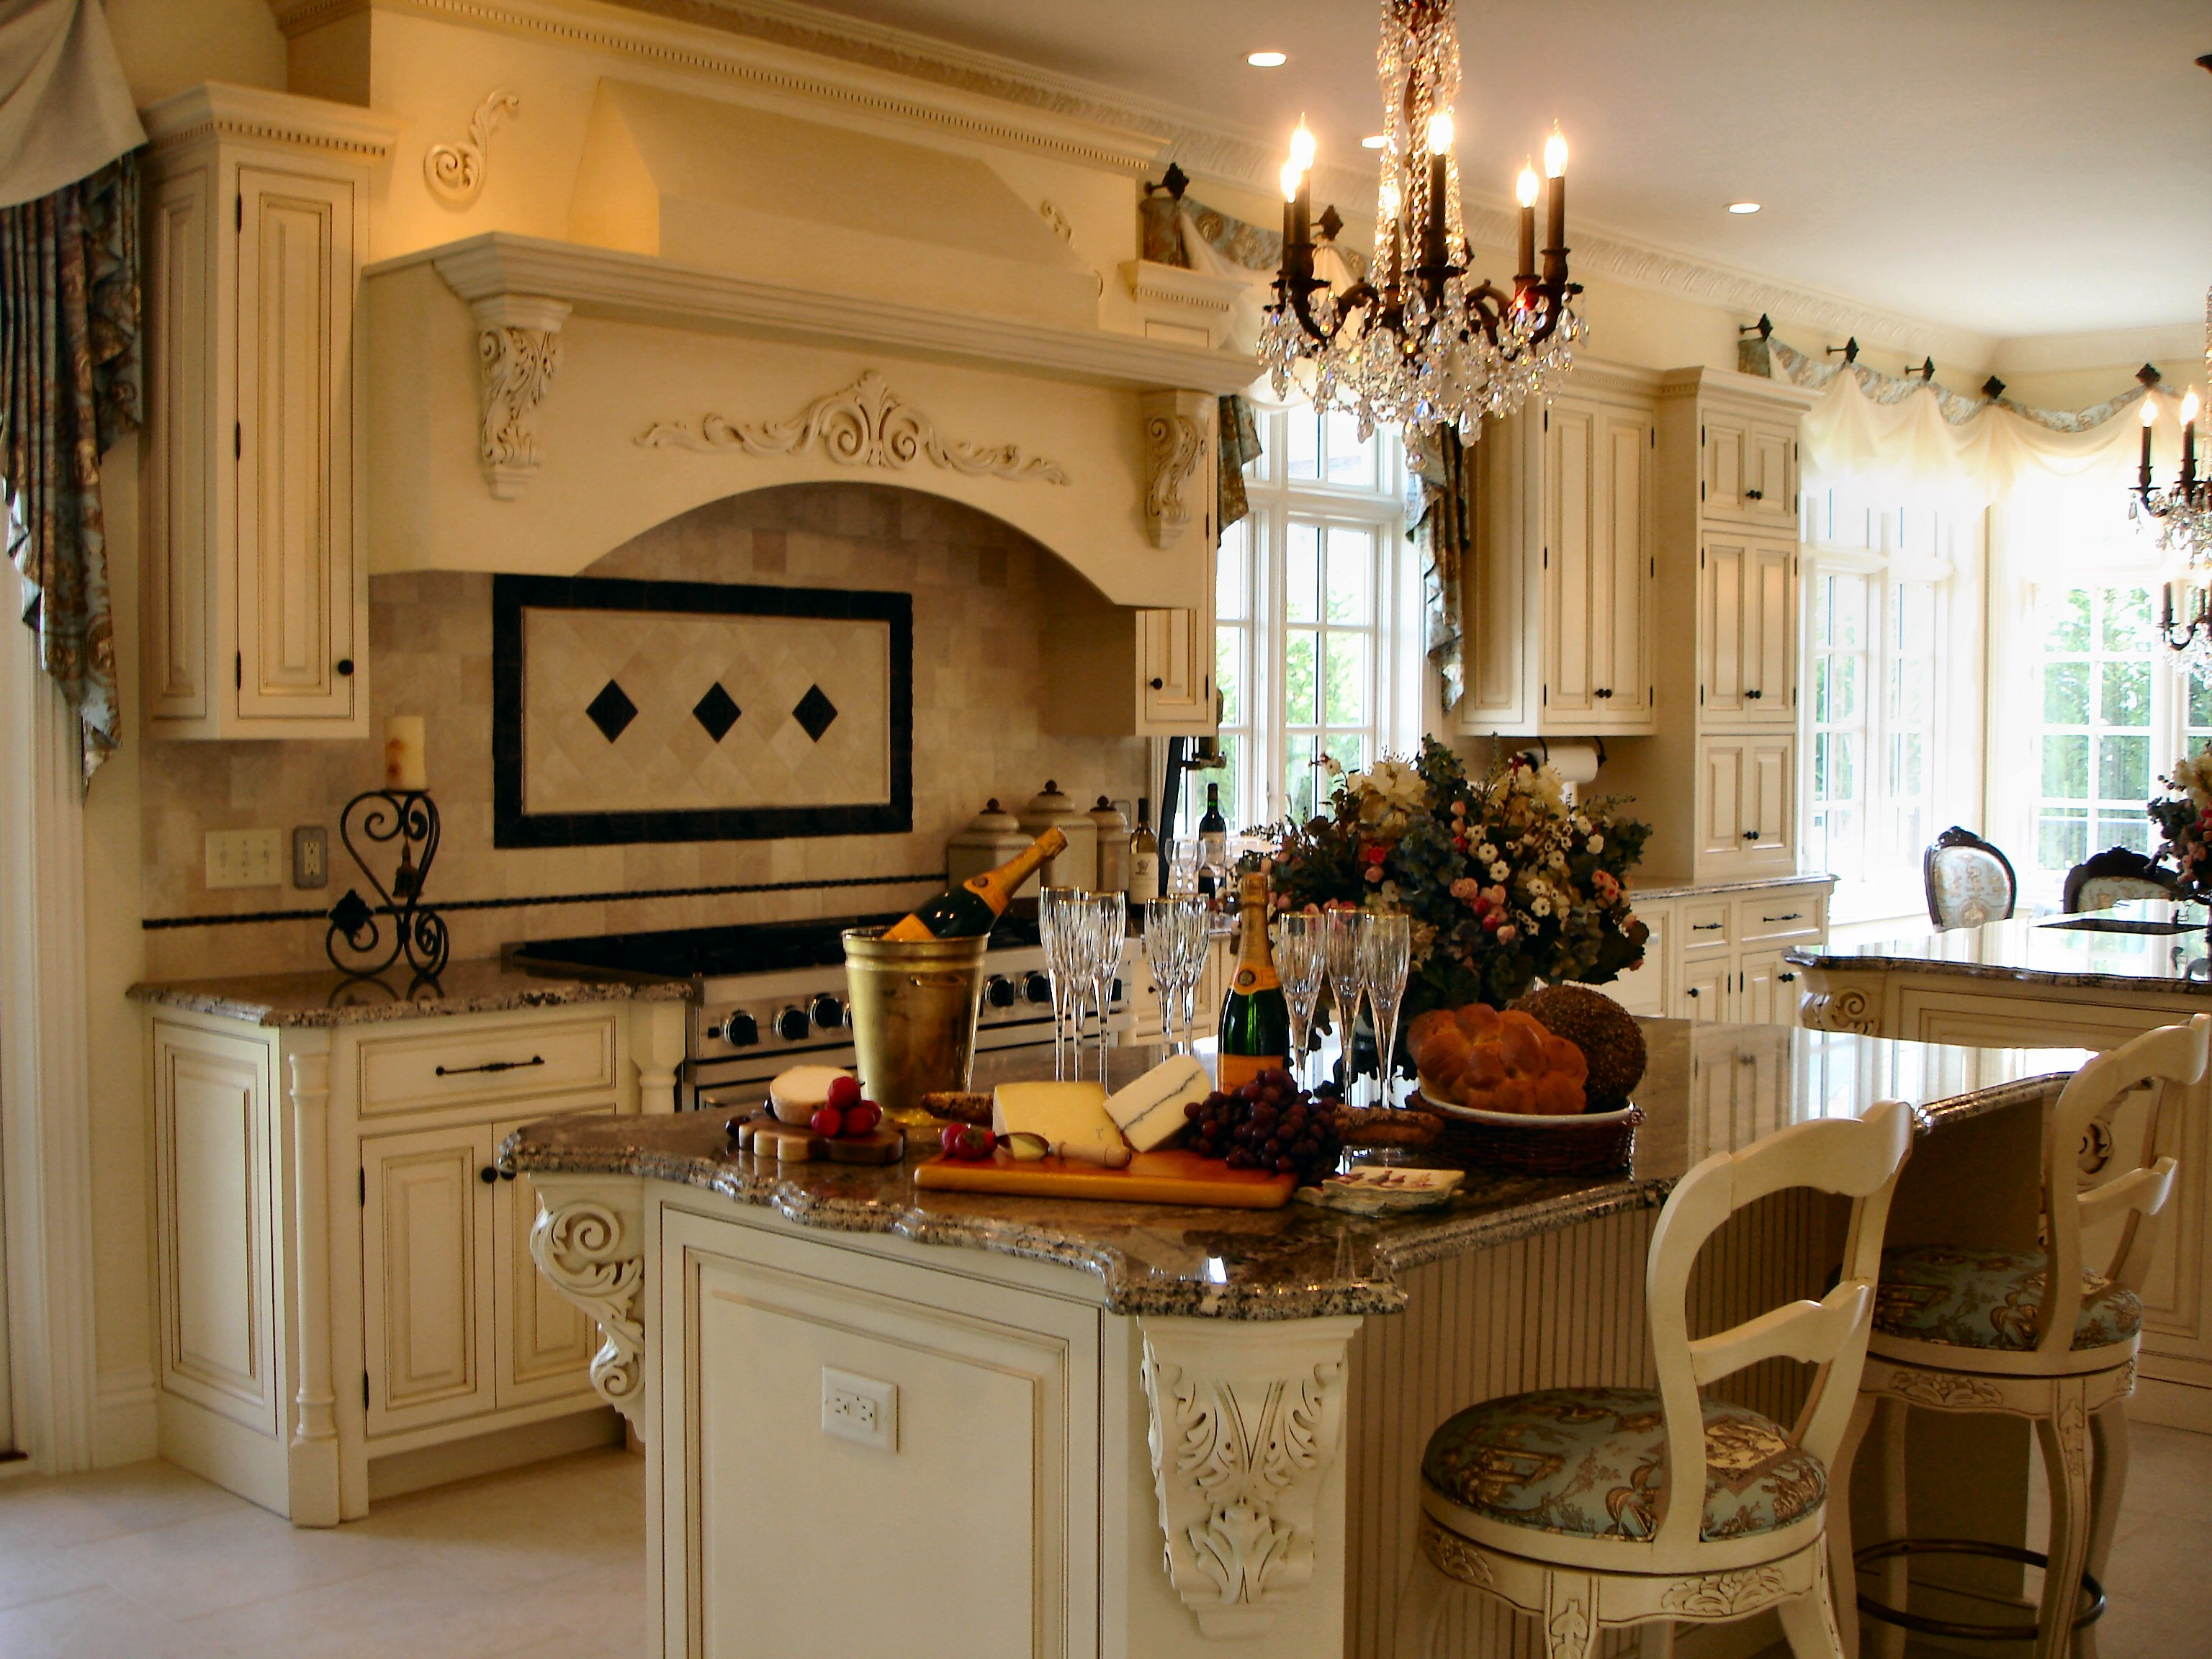 kitchen design monmouth county nj monmouth county kitchen remodeling ideas to inspire you 345